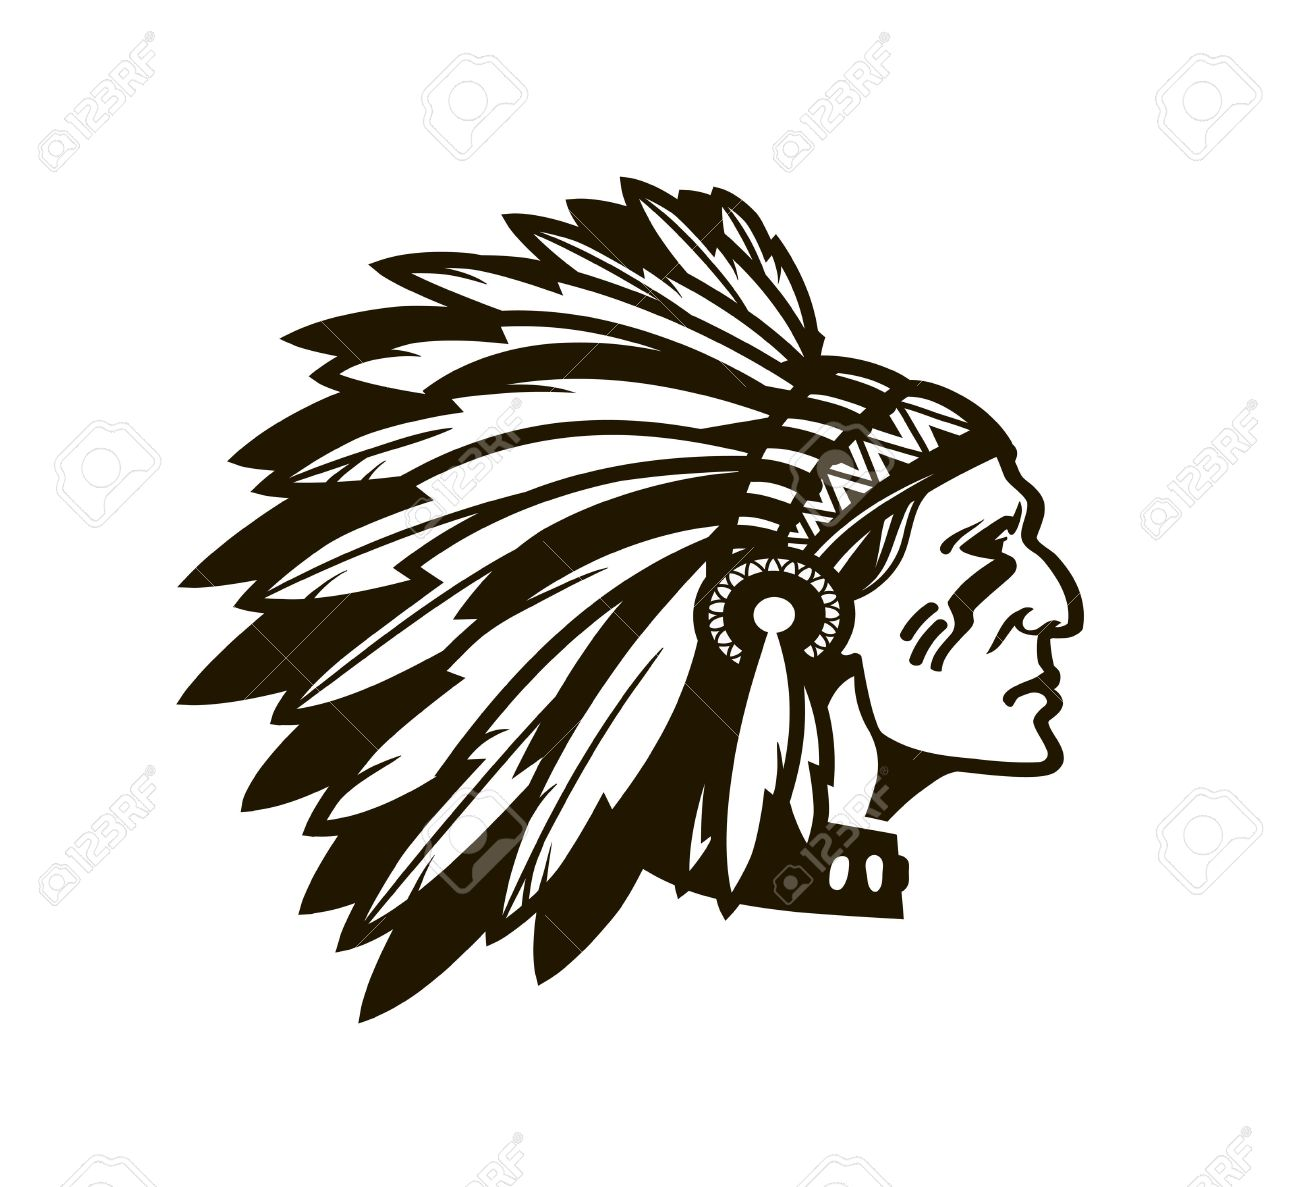 american indian chief logo or icon vector illustration isolated rh 123rf com